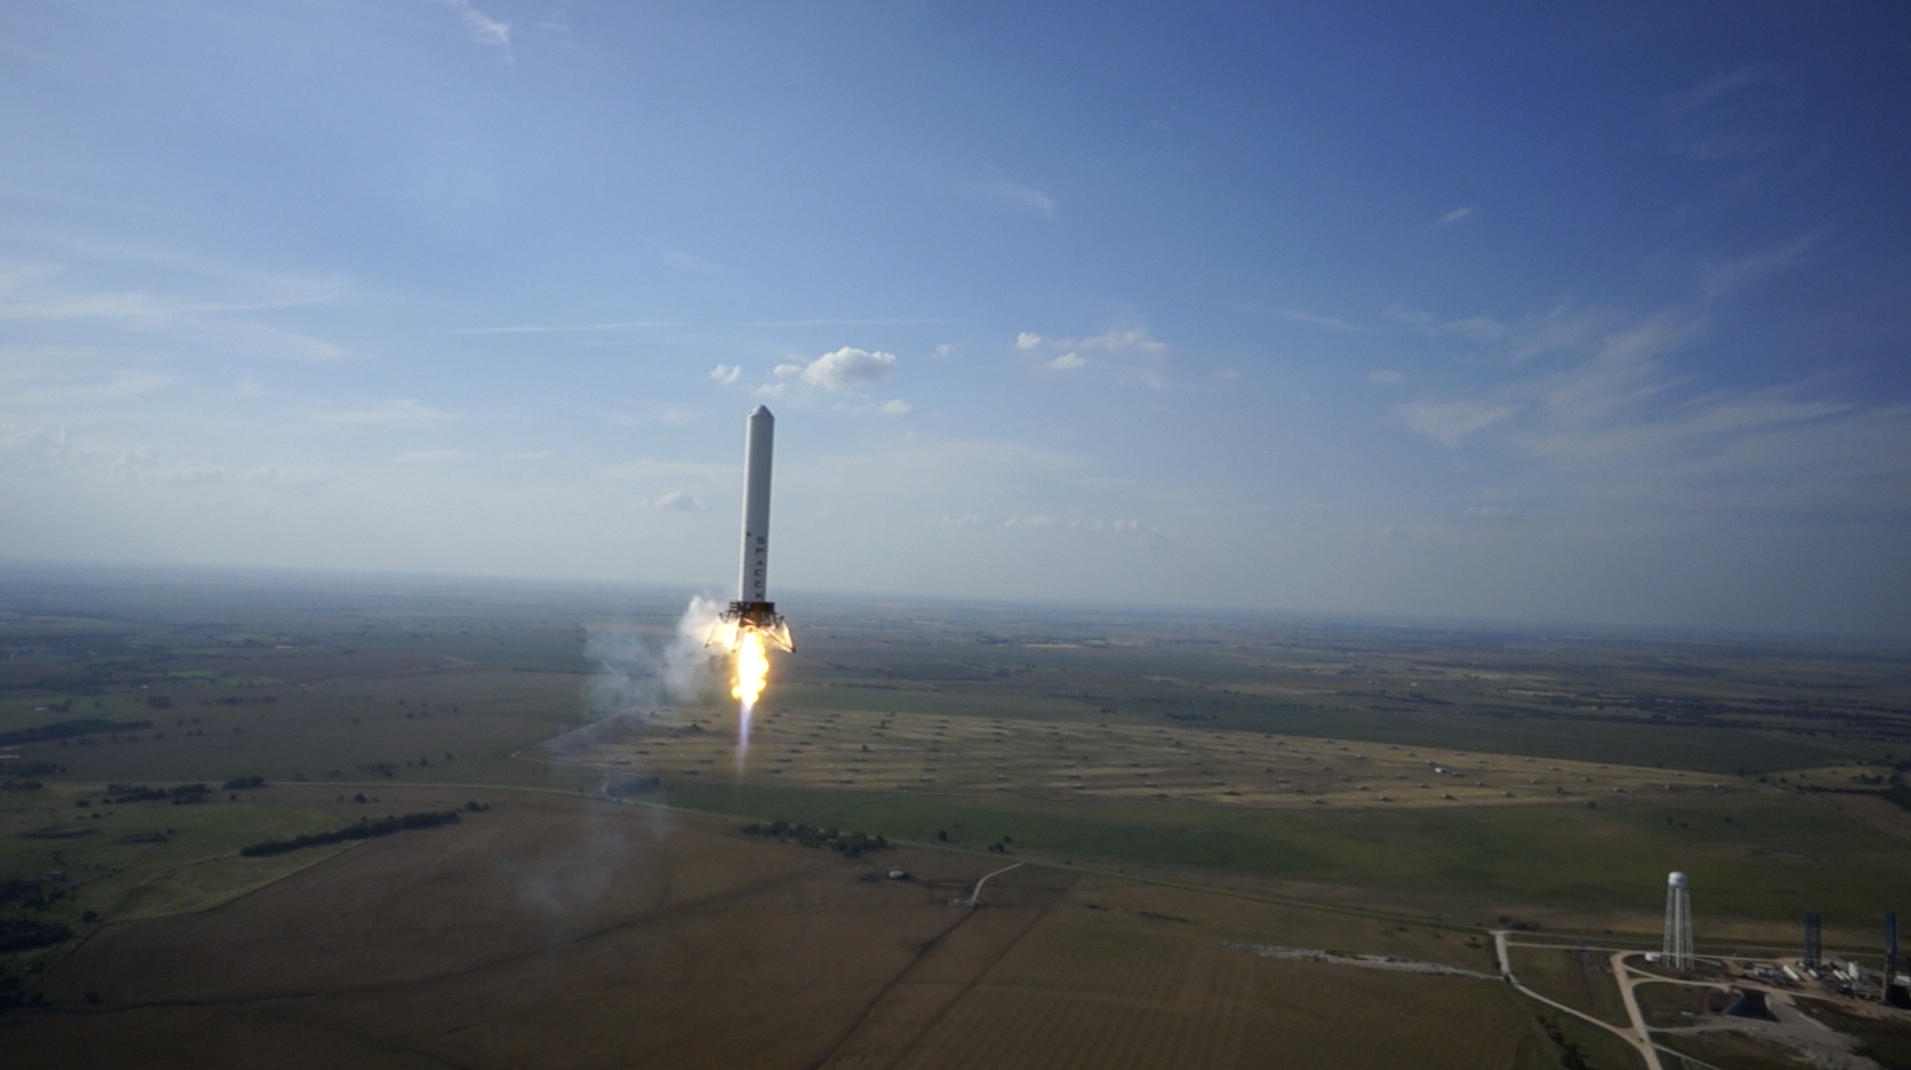 SpaceX_Grasshopper_rocket_midflight